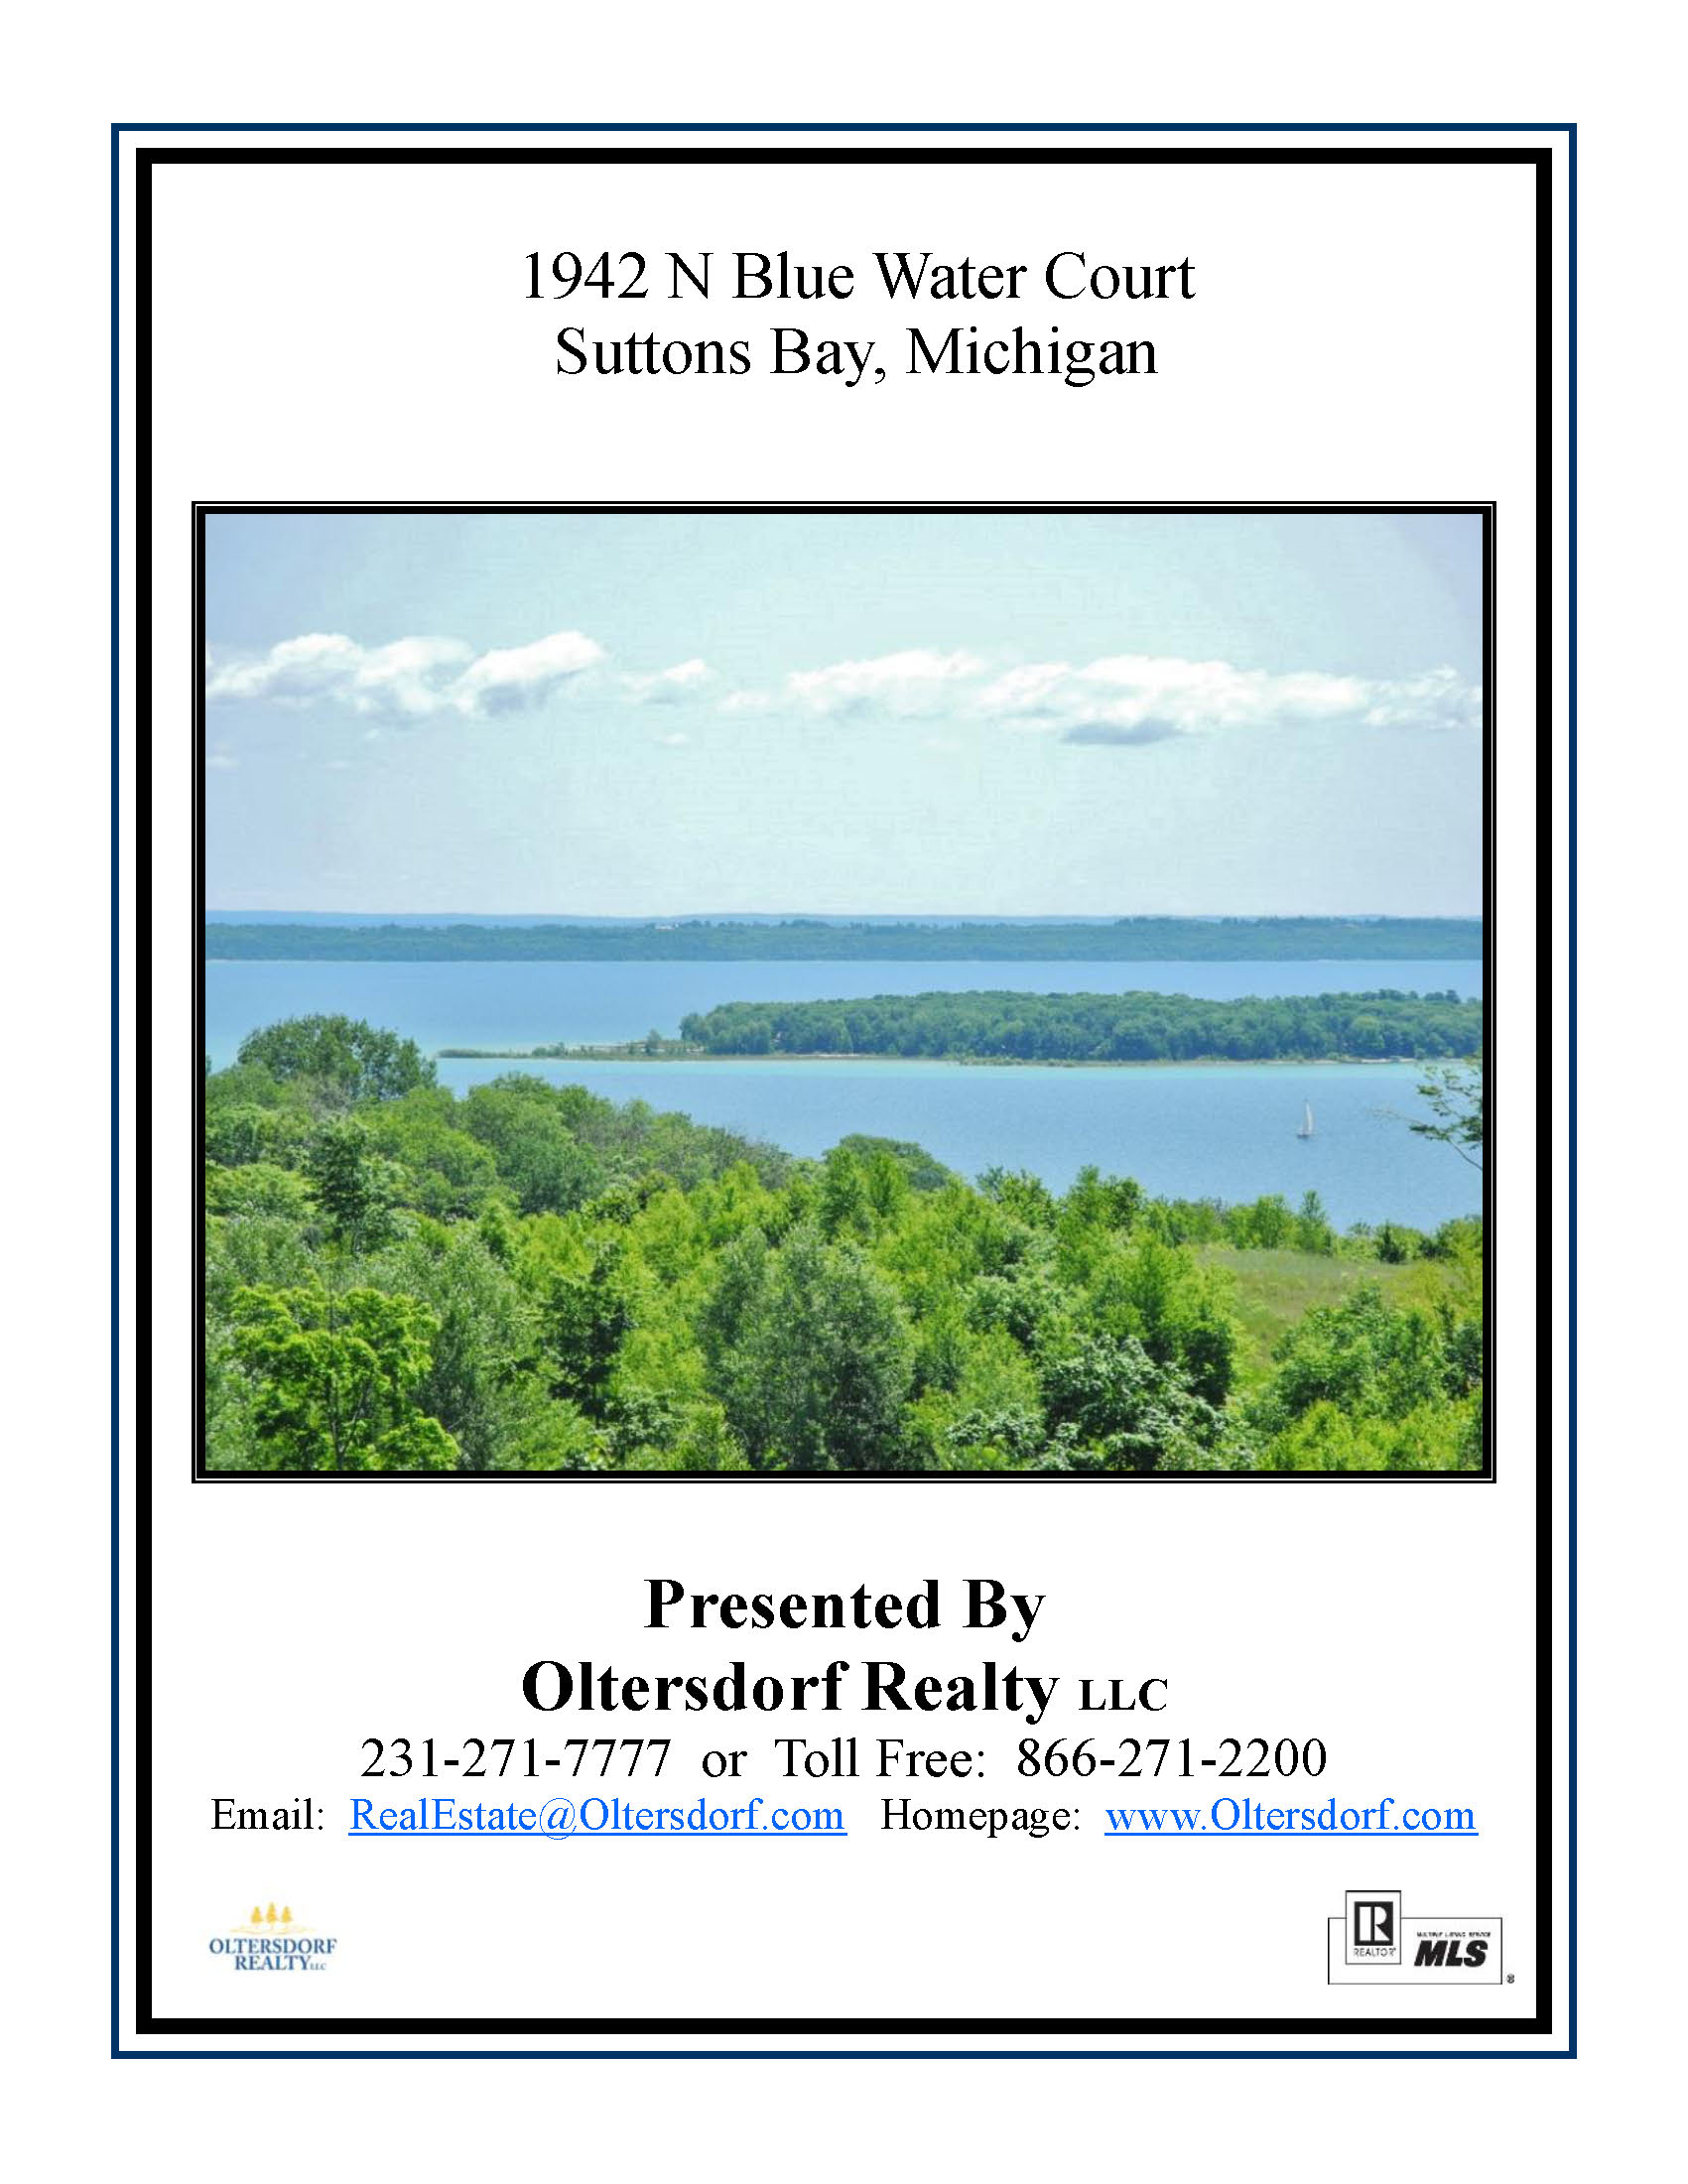 1942 N Blue Water Ct, Suttons Bay Water View property for sale by Oltersdorf Realty LLC (1).jpg